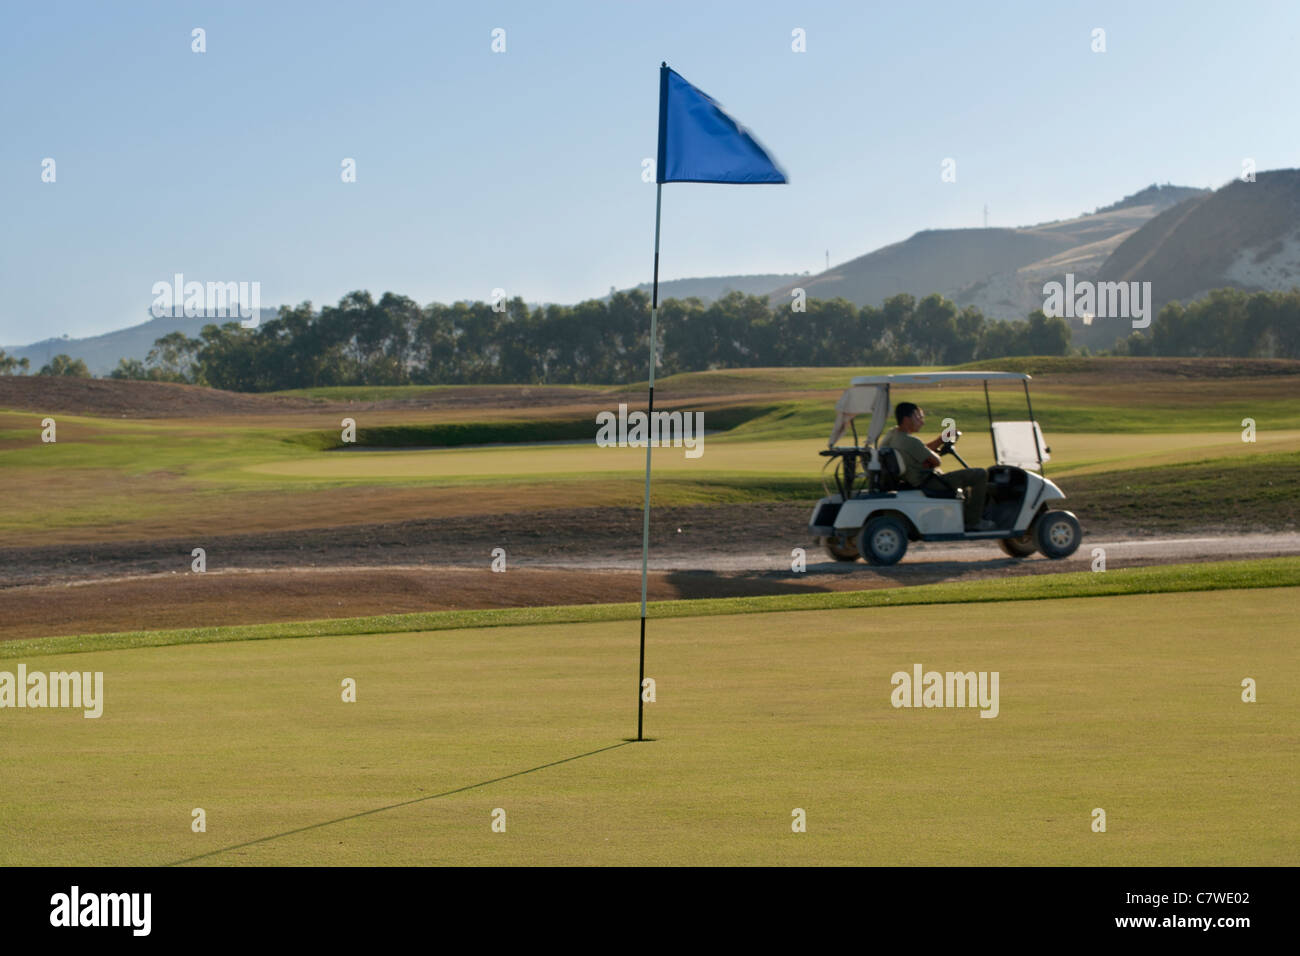 Golf buggy passing a golf green with a blue flag - Stock Image